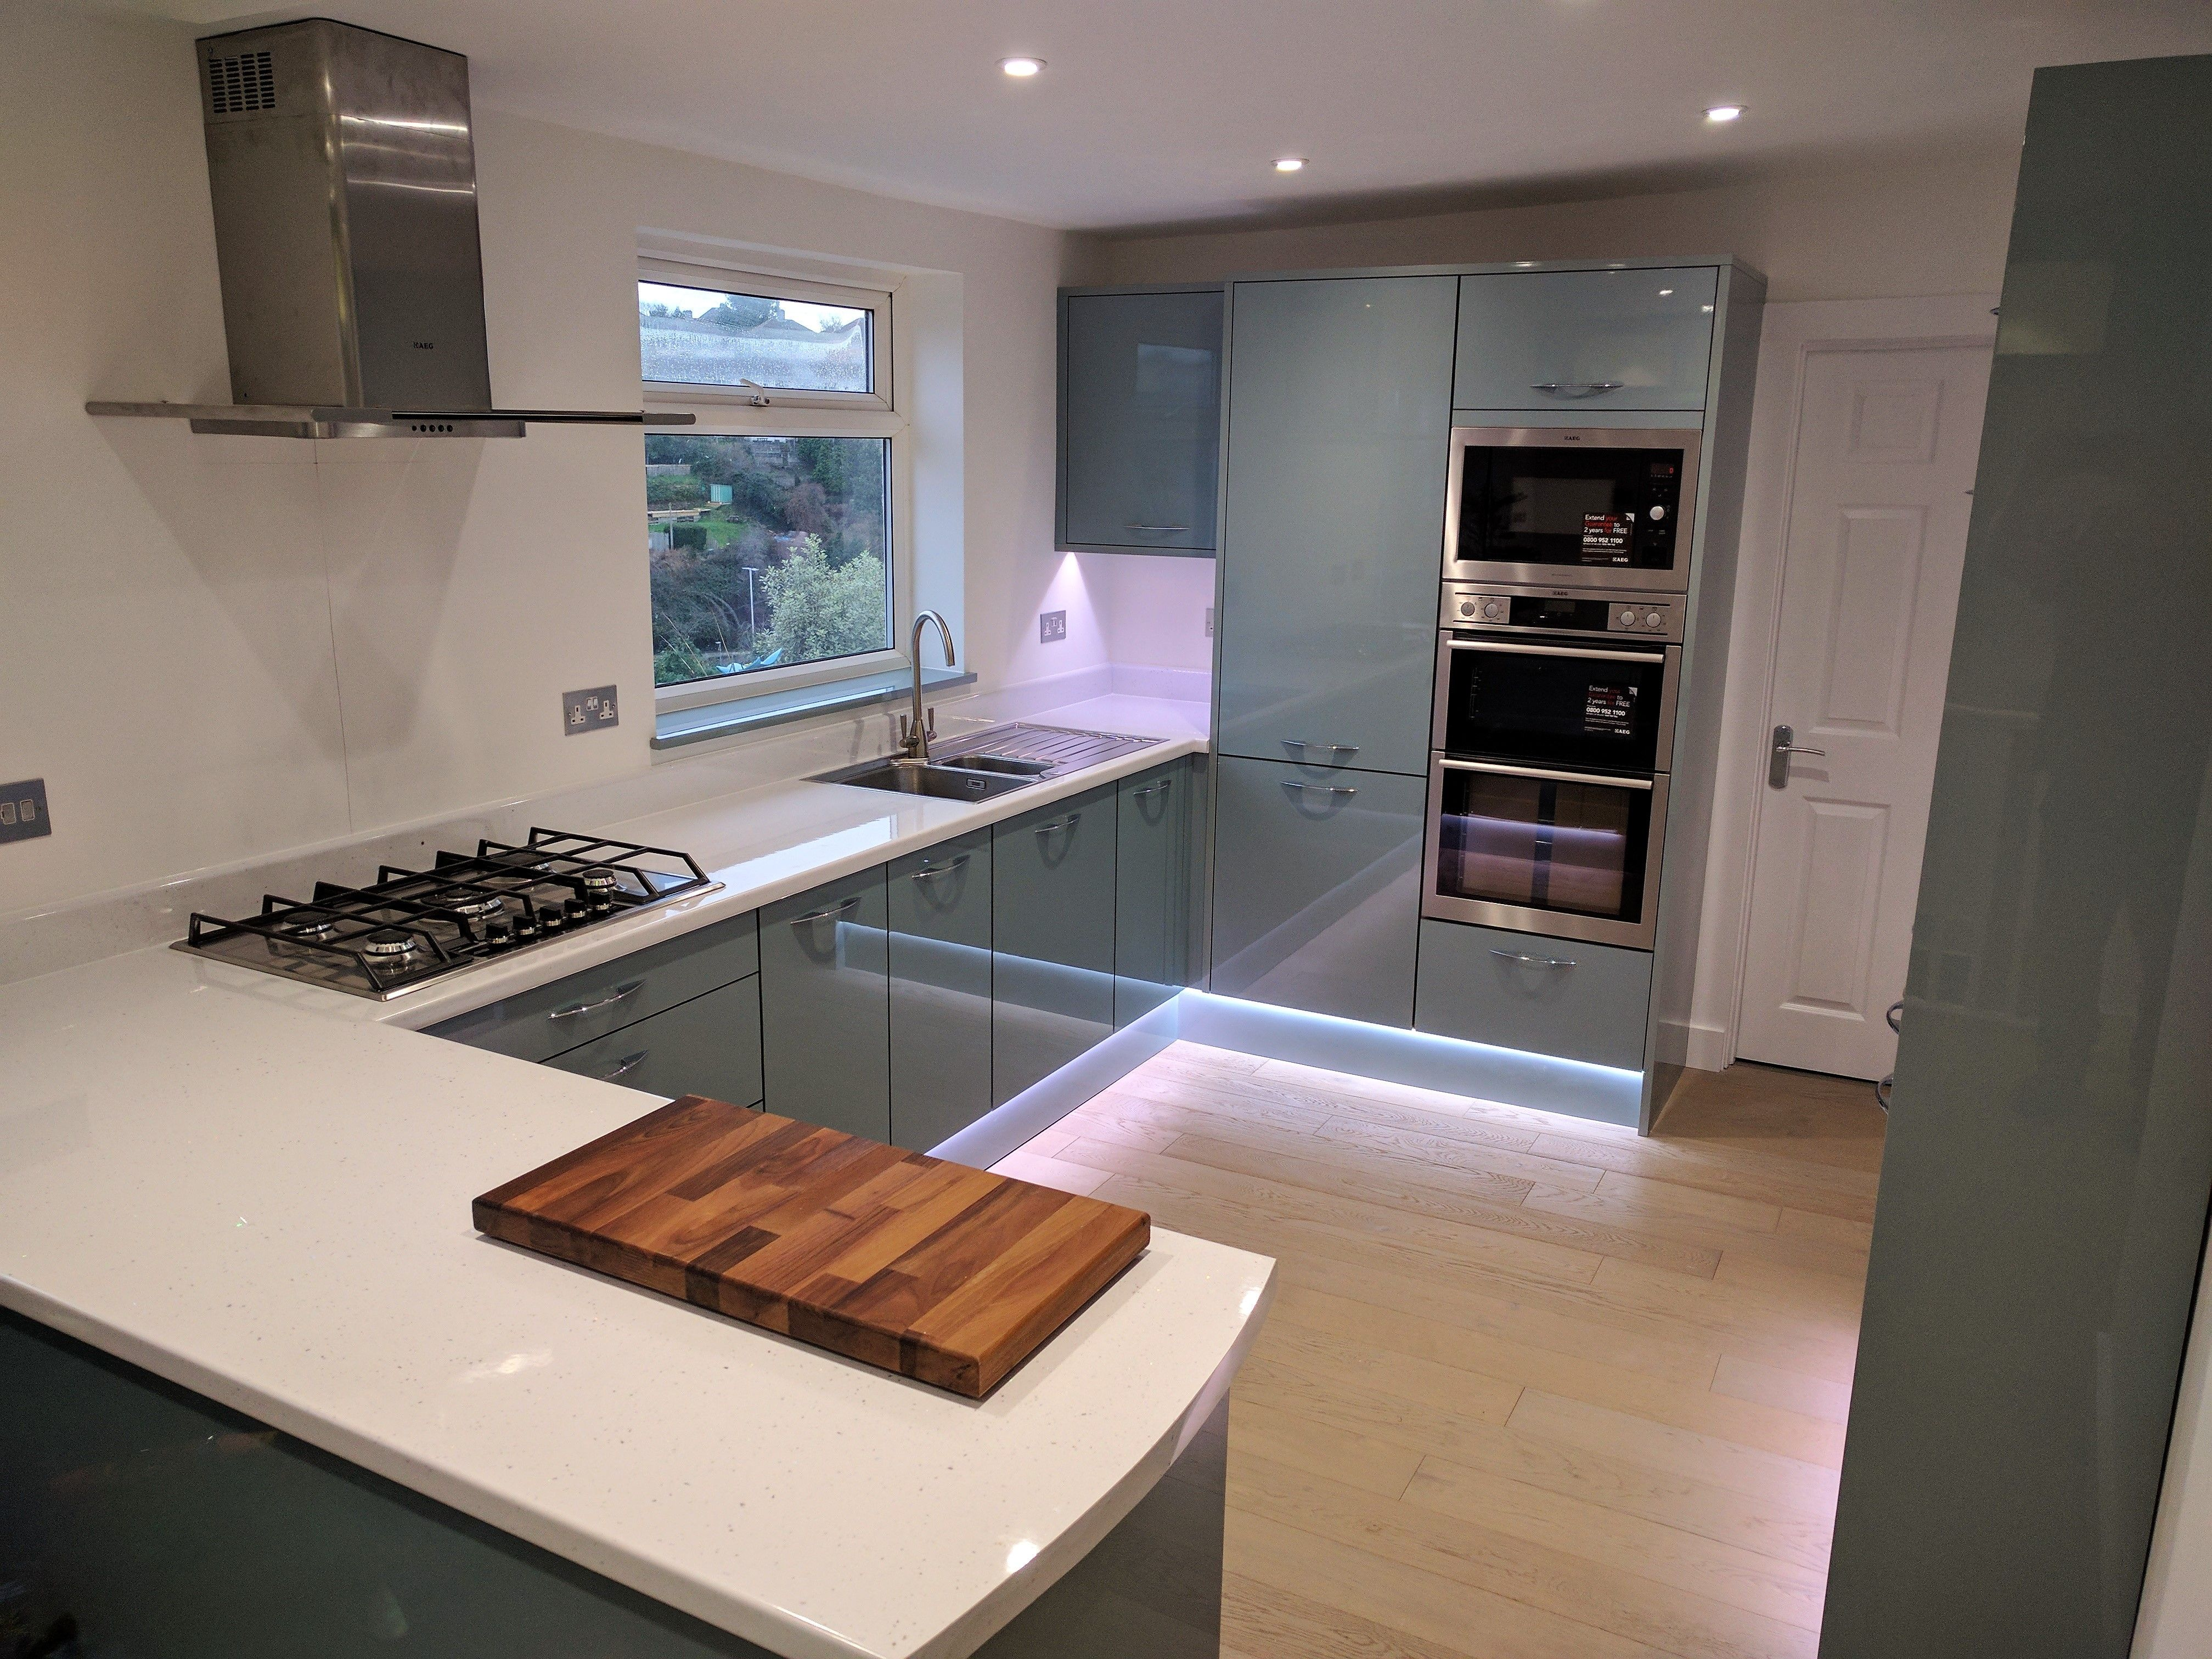 Kitchen created with Fusion blue and Apollo white